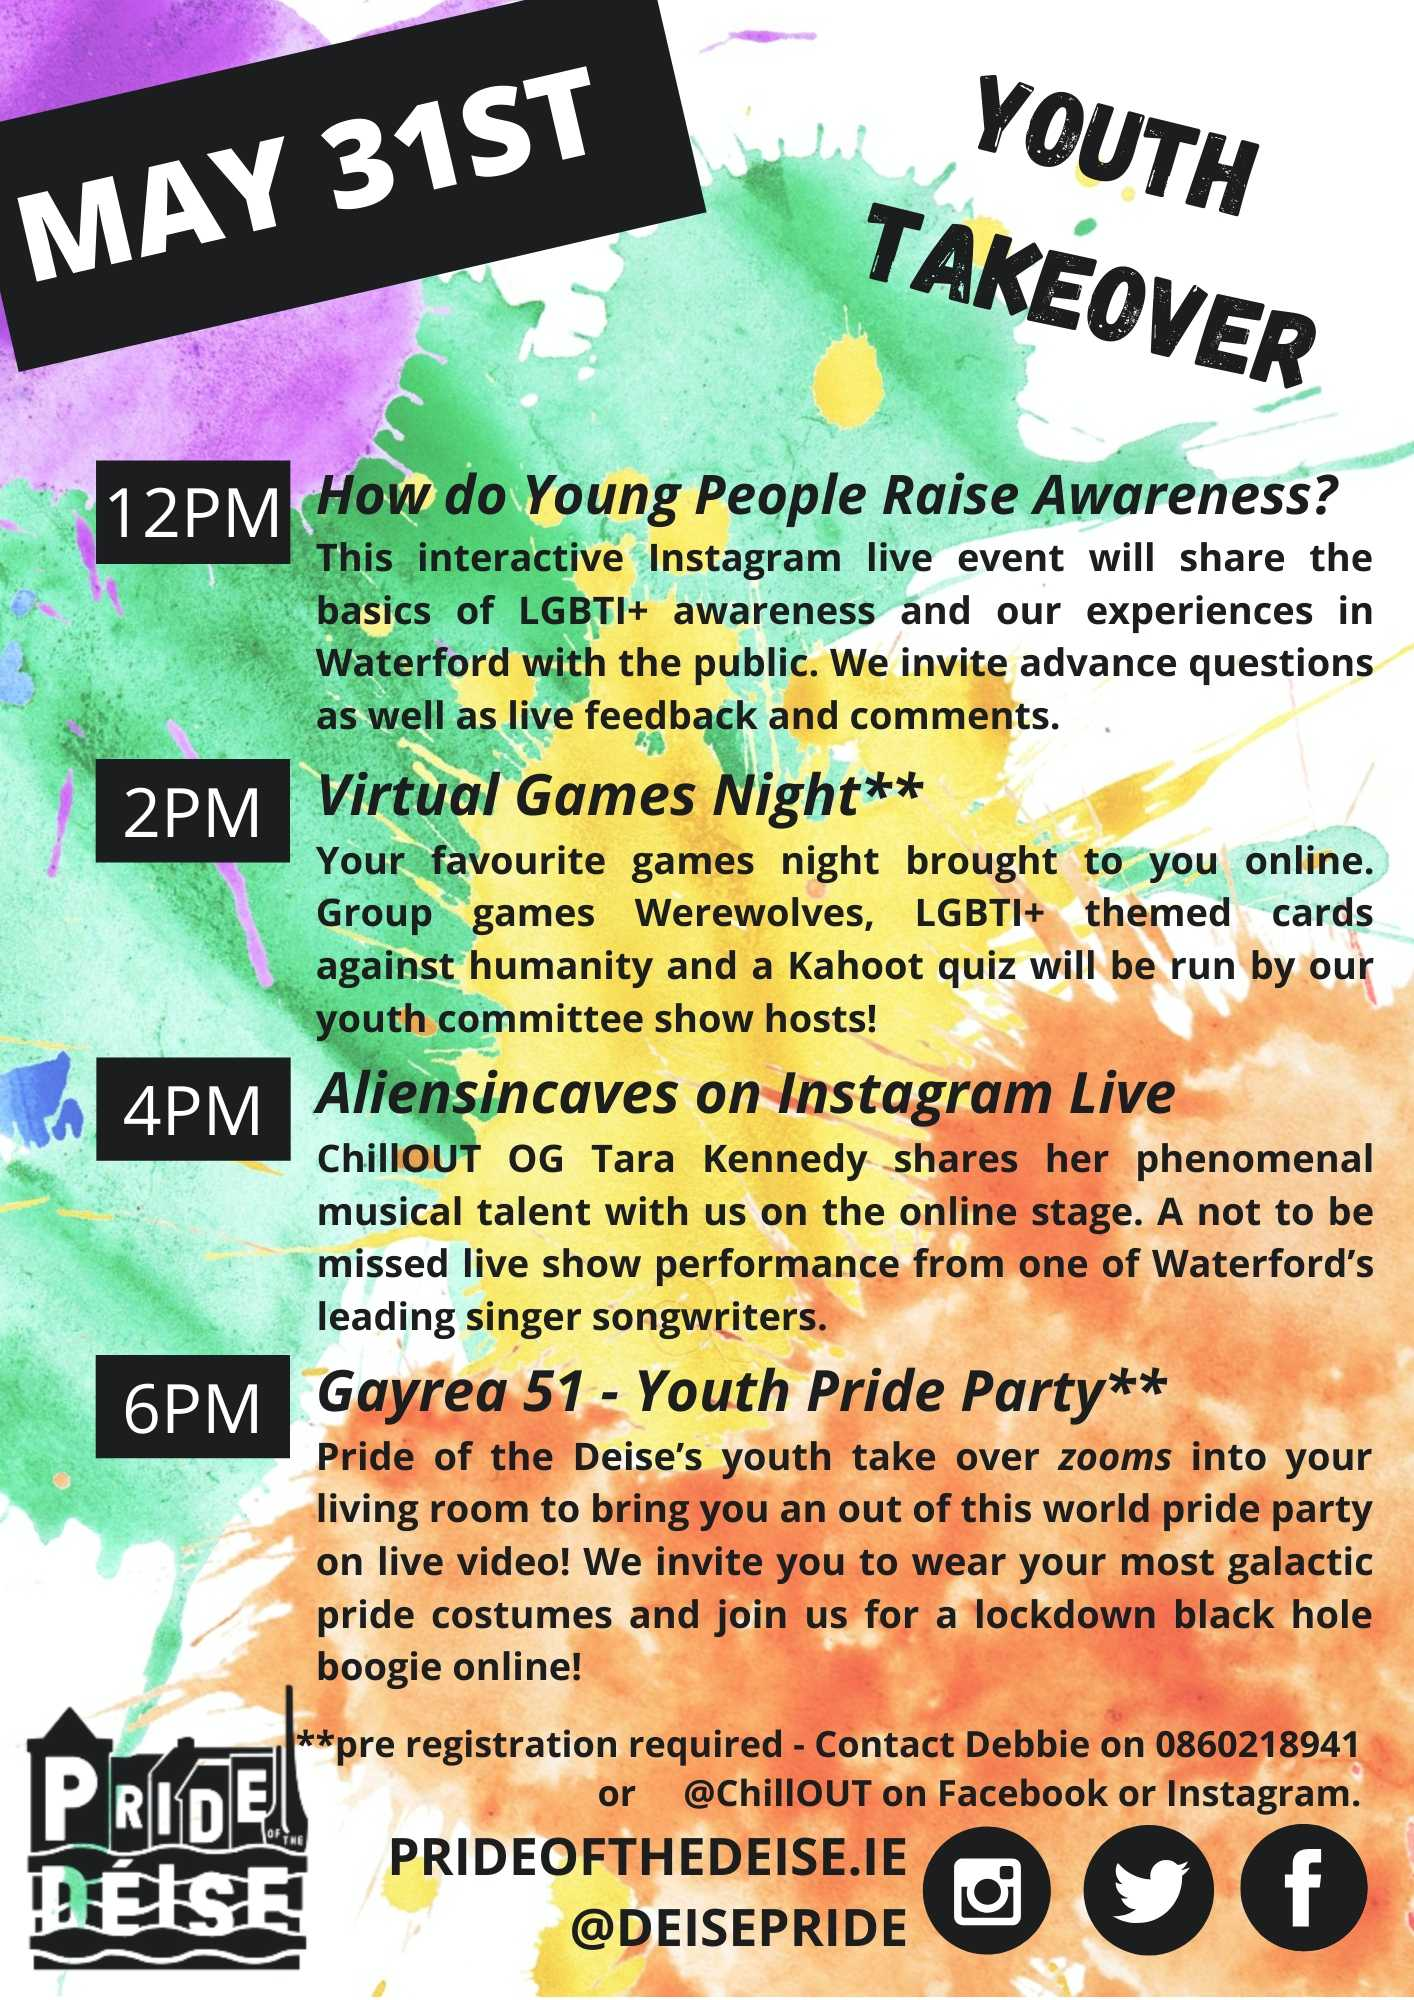 May 31st  youth takeover 12pm How do Young People Raise Awareness? This interactive Instagram live event will share the basics of LGBTI+ awareness and our experiences in Waterford with the public. We invite advance questions as well as live feedback and comments. 2pm Virtual Games Night* Your favourite games night brought to you online. Group games Werewolves, LGBTI+ themed cards against humanity and a Kahoot quiz will be run by our youth committee show hosts! 4pm Aliensincaves on Facebook Live ChillOUT OG Tara Kennedy shares her phenomenal musical talent with us on the online stage. A not to be missed live show performance from one of Waterford's leading singer songwriters. 6pm Gayrea 51 - Youth Pride Party* Pride of the Deise's youth take over zooms into your living room to bring you an out of this world you pride party on live video! We invite you to wear your most galactic pride costumes and join us for a lockdown black hole boogie online! *pre registration required - Contact Debbie on 0860218941 or @ChillOUT on Facebook or Instagram.